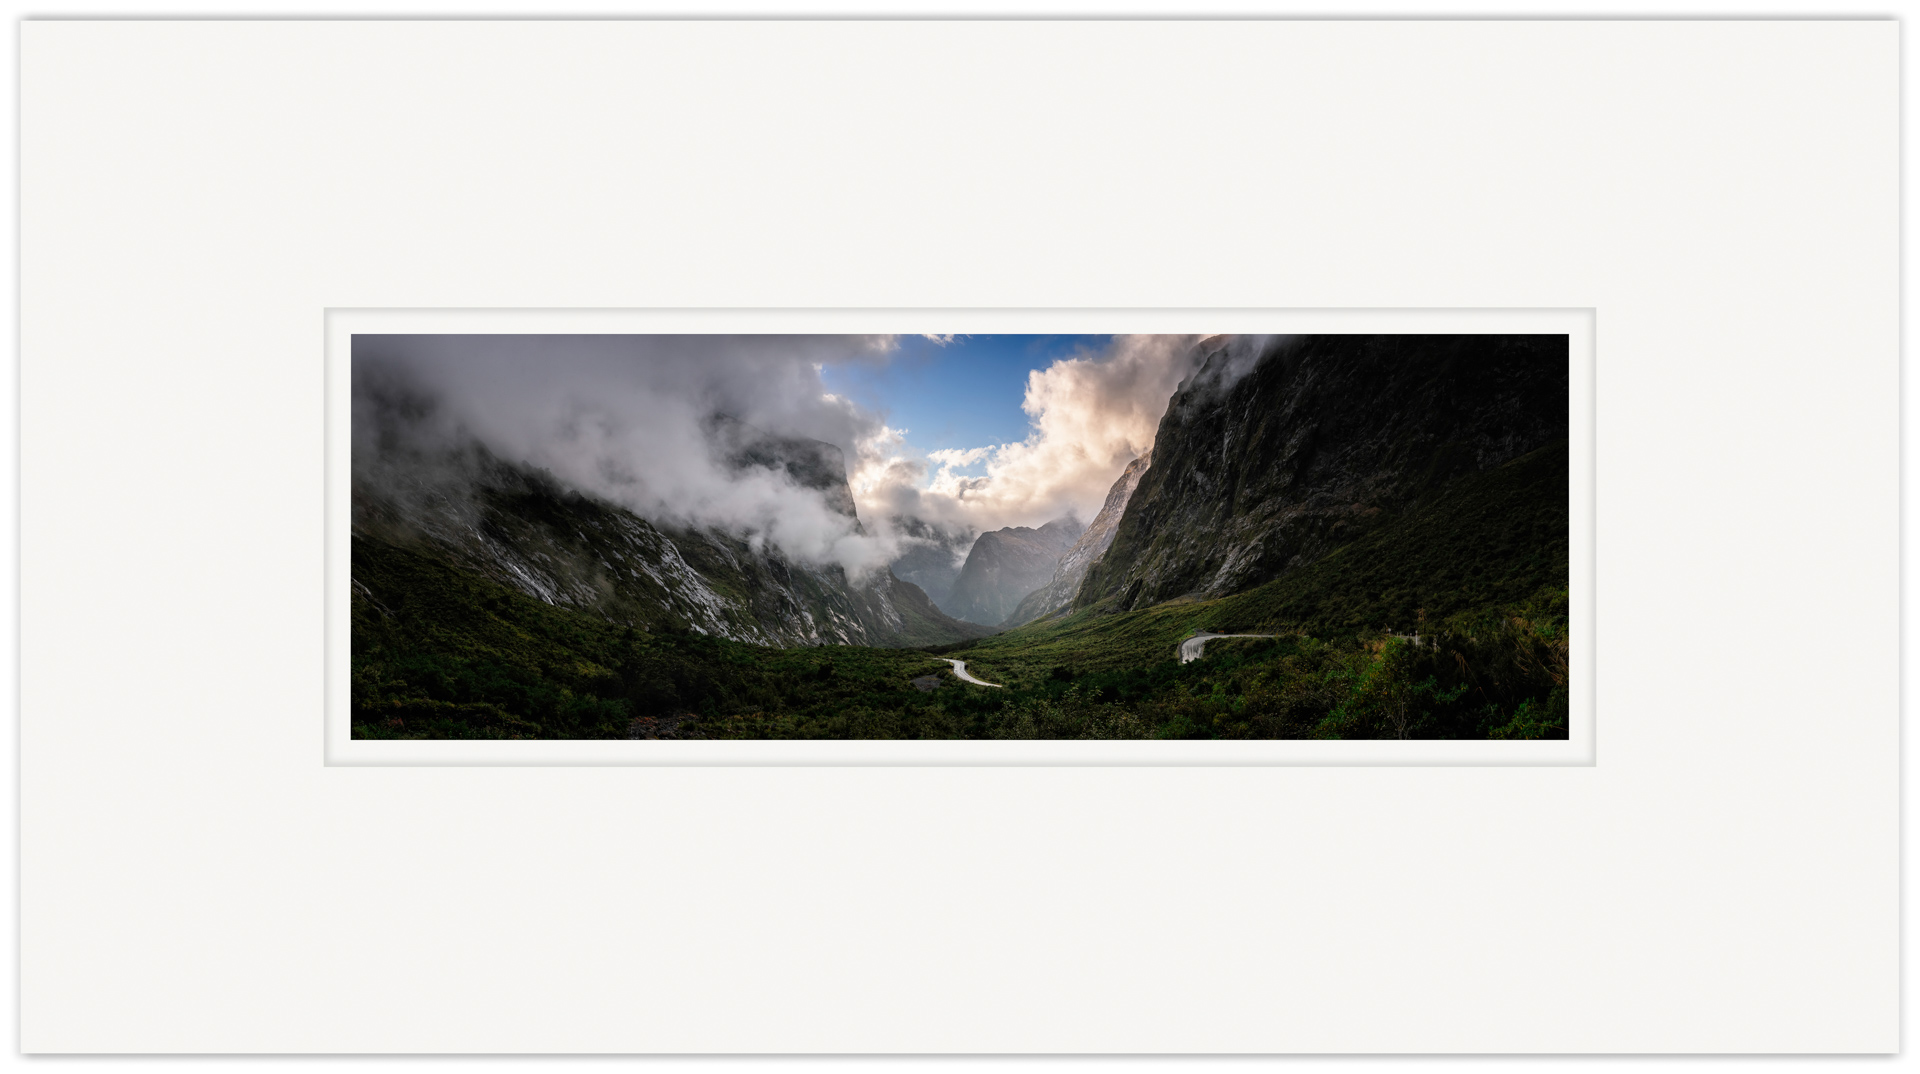 Gate to The Fiordland   20cm x 60cm Photo Paper Limited Edition of 99   IDR 1,699,000